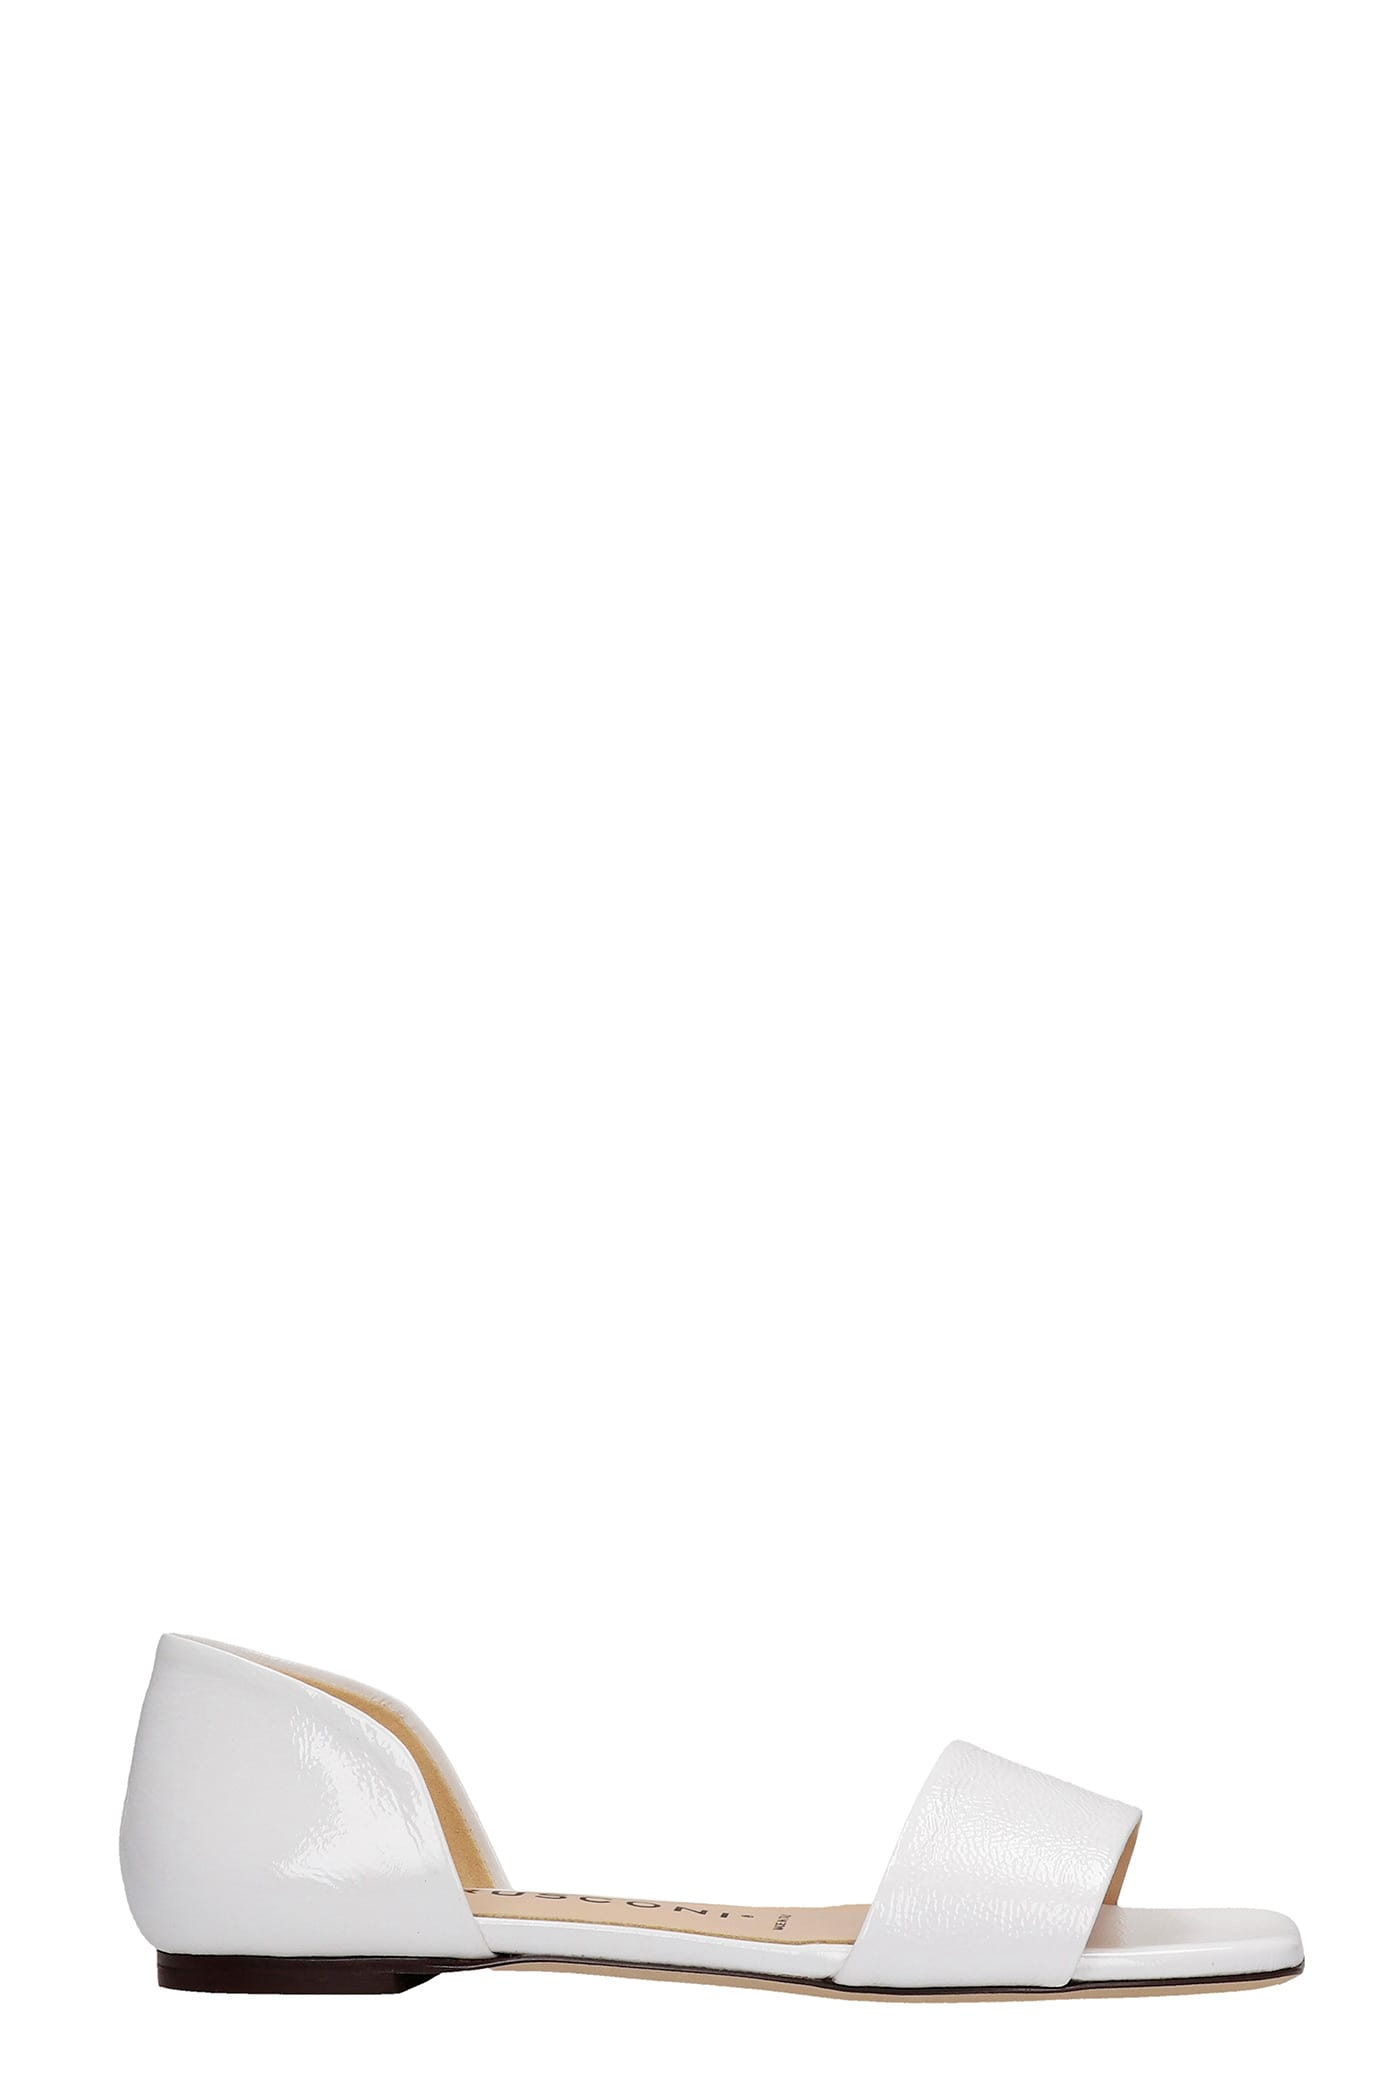 Flats In White Patent Leather